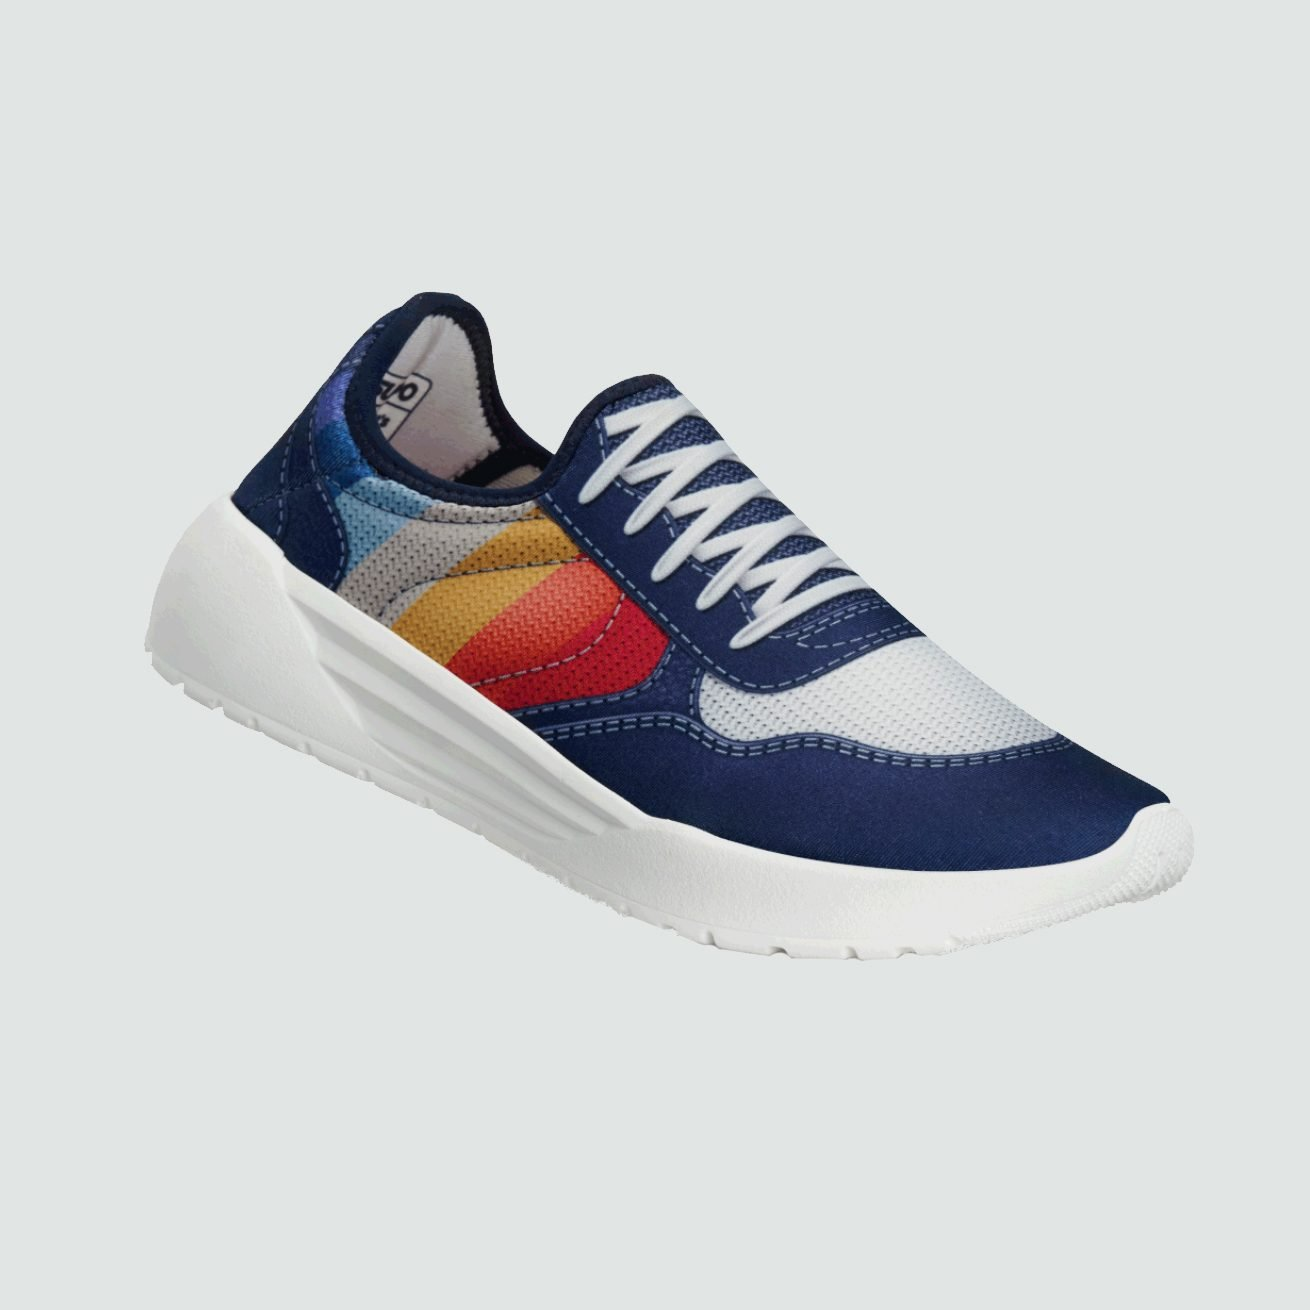 psudo court sneakers